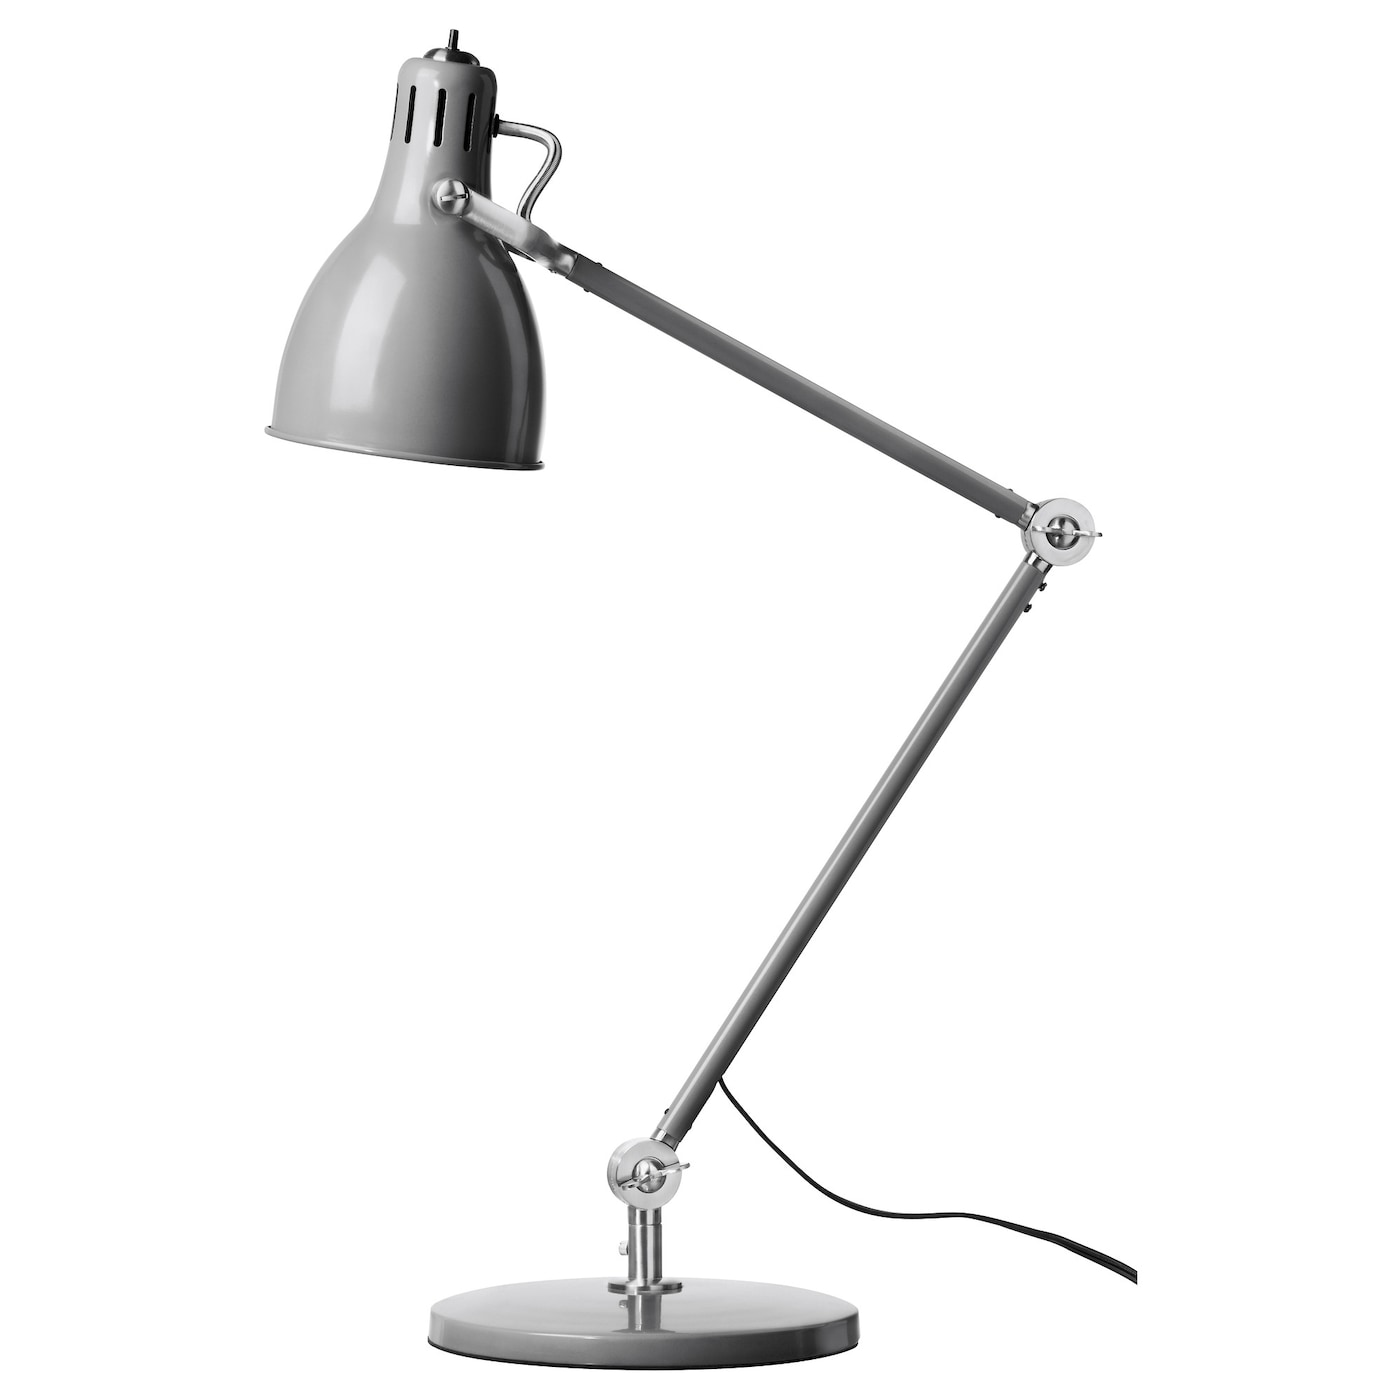 Desk lamps led work lamps office lighting at ikea ireland ikea ard work lamp provides a directed light that is great for reading geotapseo Images